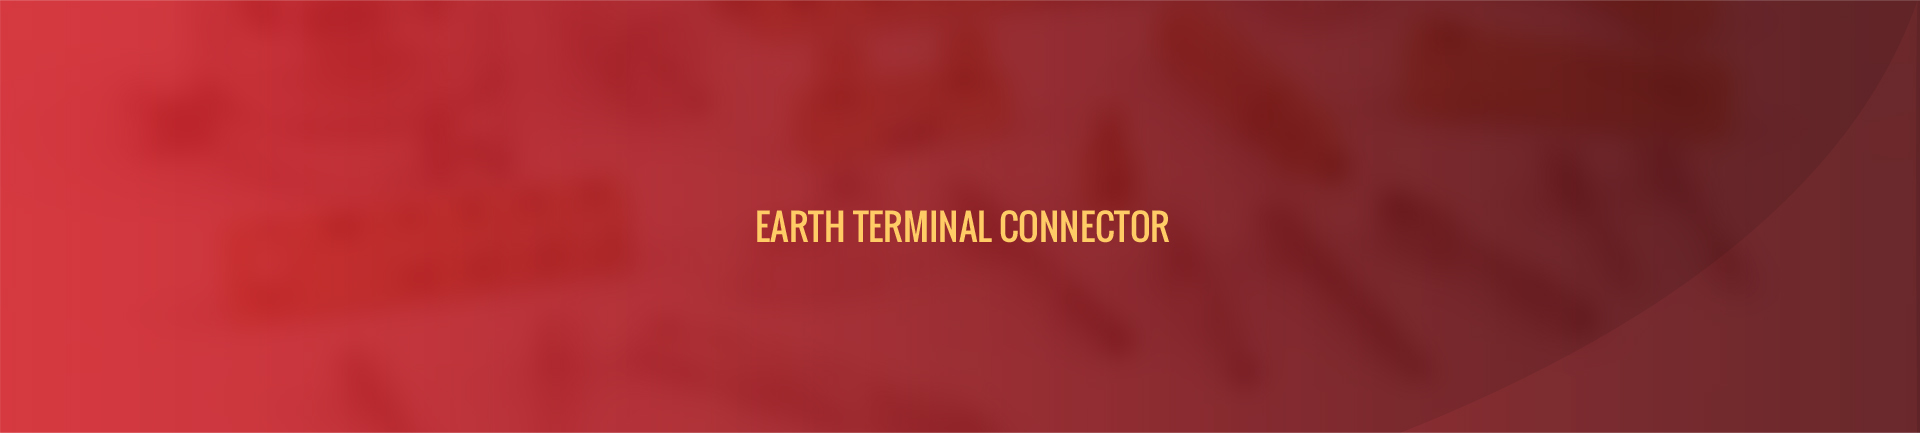 earth-terminal-connector-banner